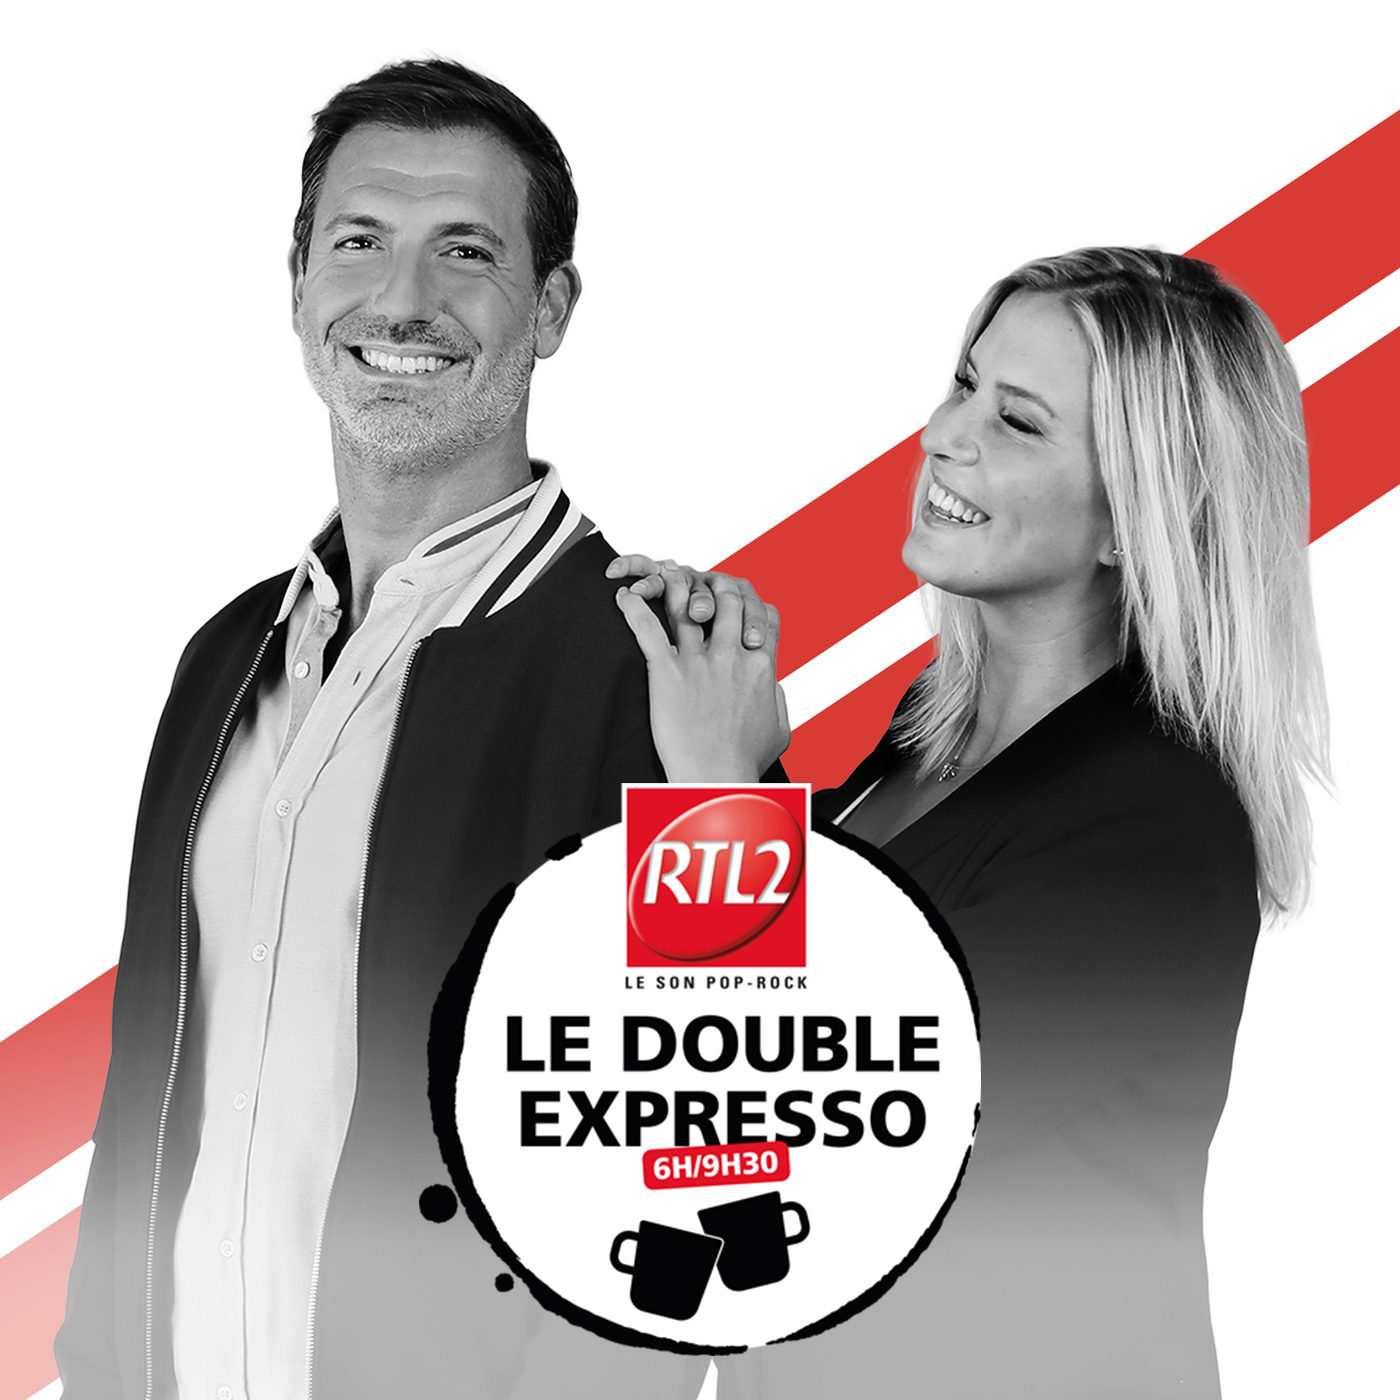 Image 1: Le Double Expresso RTL2